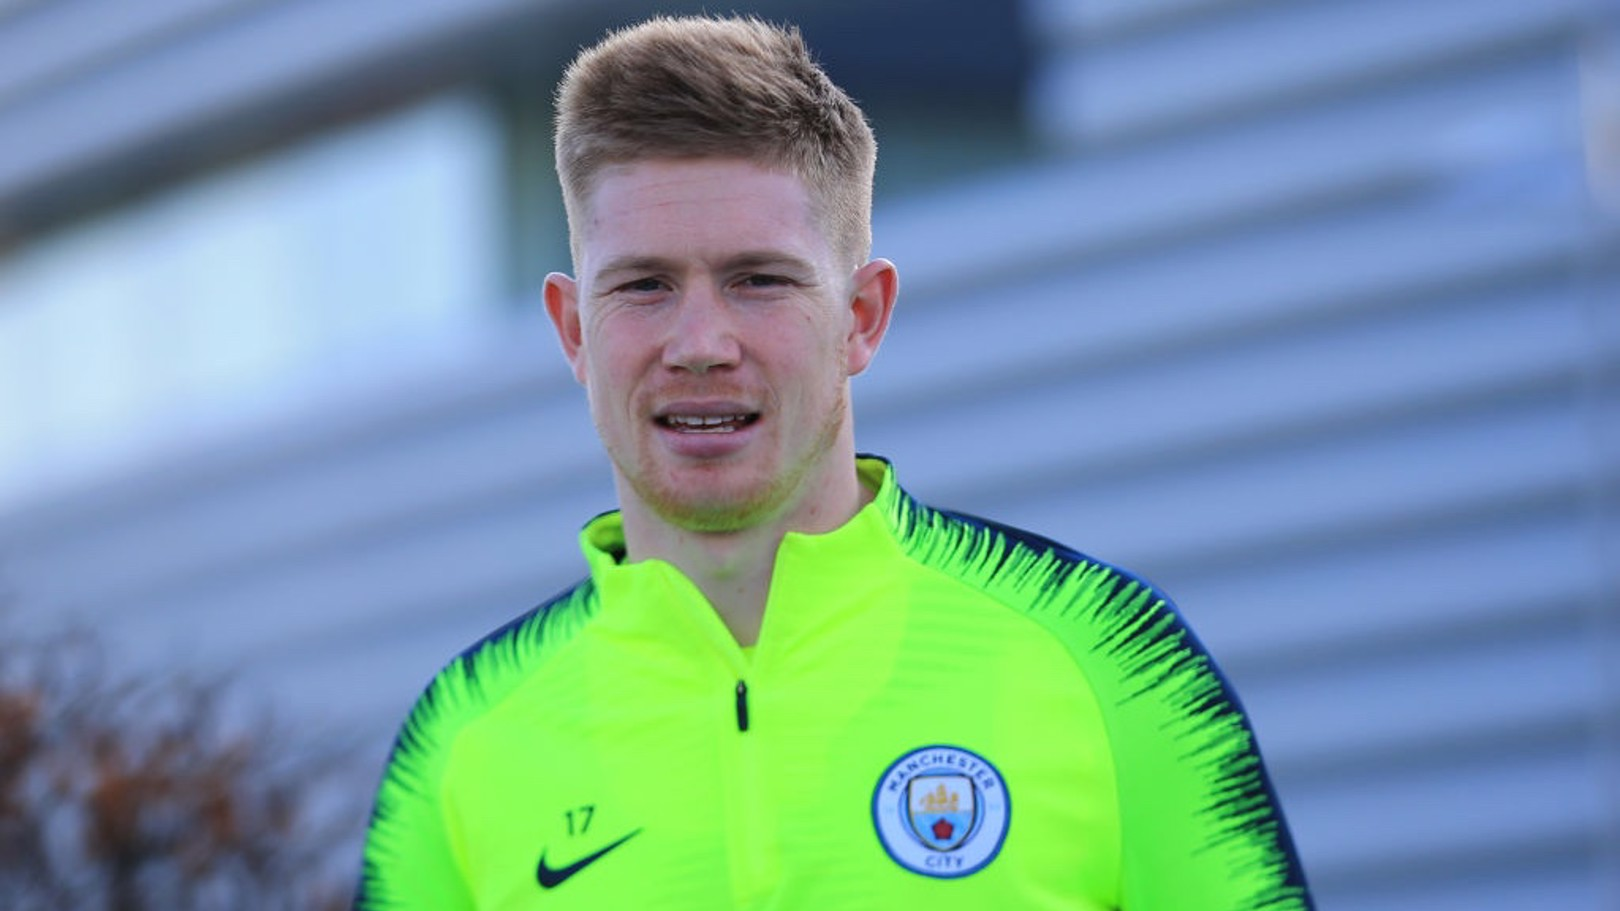 GAME BY GAME: De Bruyne say's City's schedule is too packed to think about the Quadruple